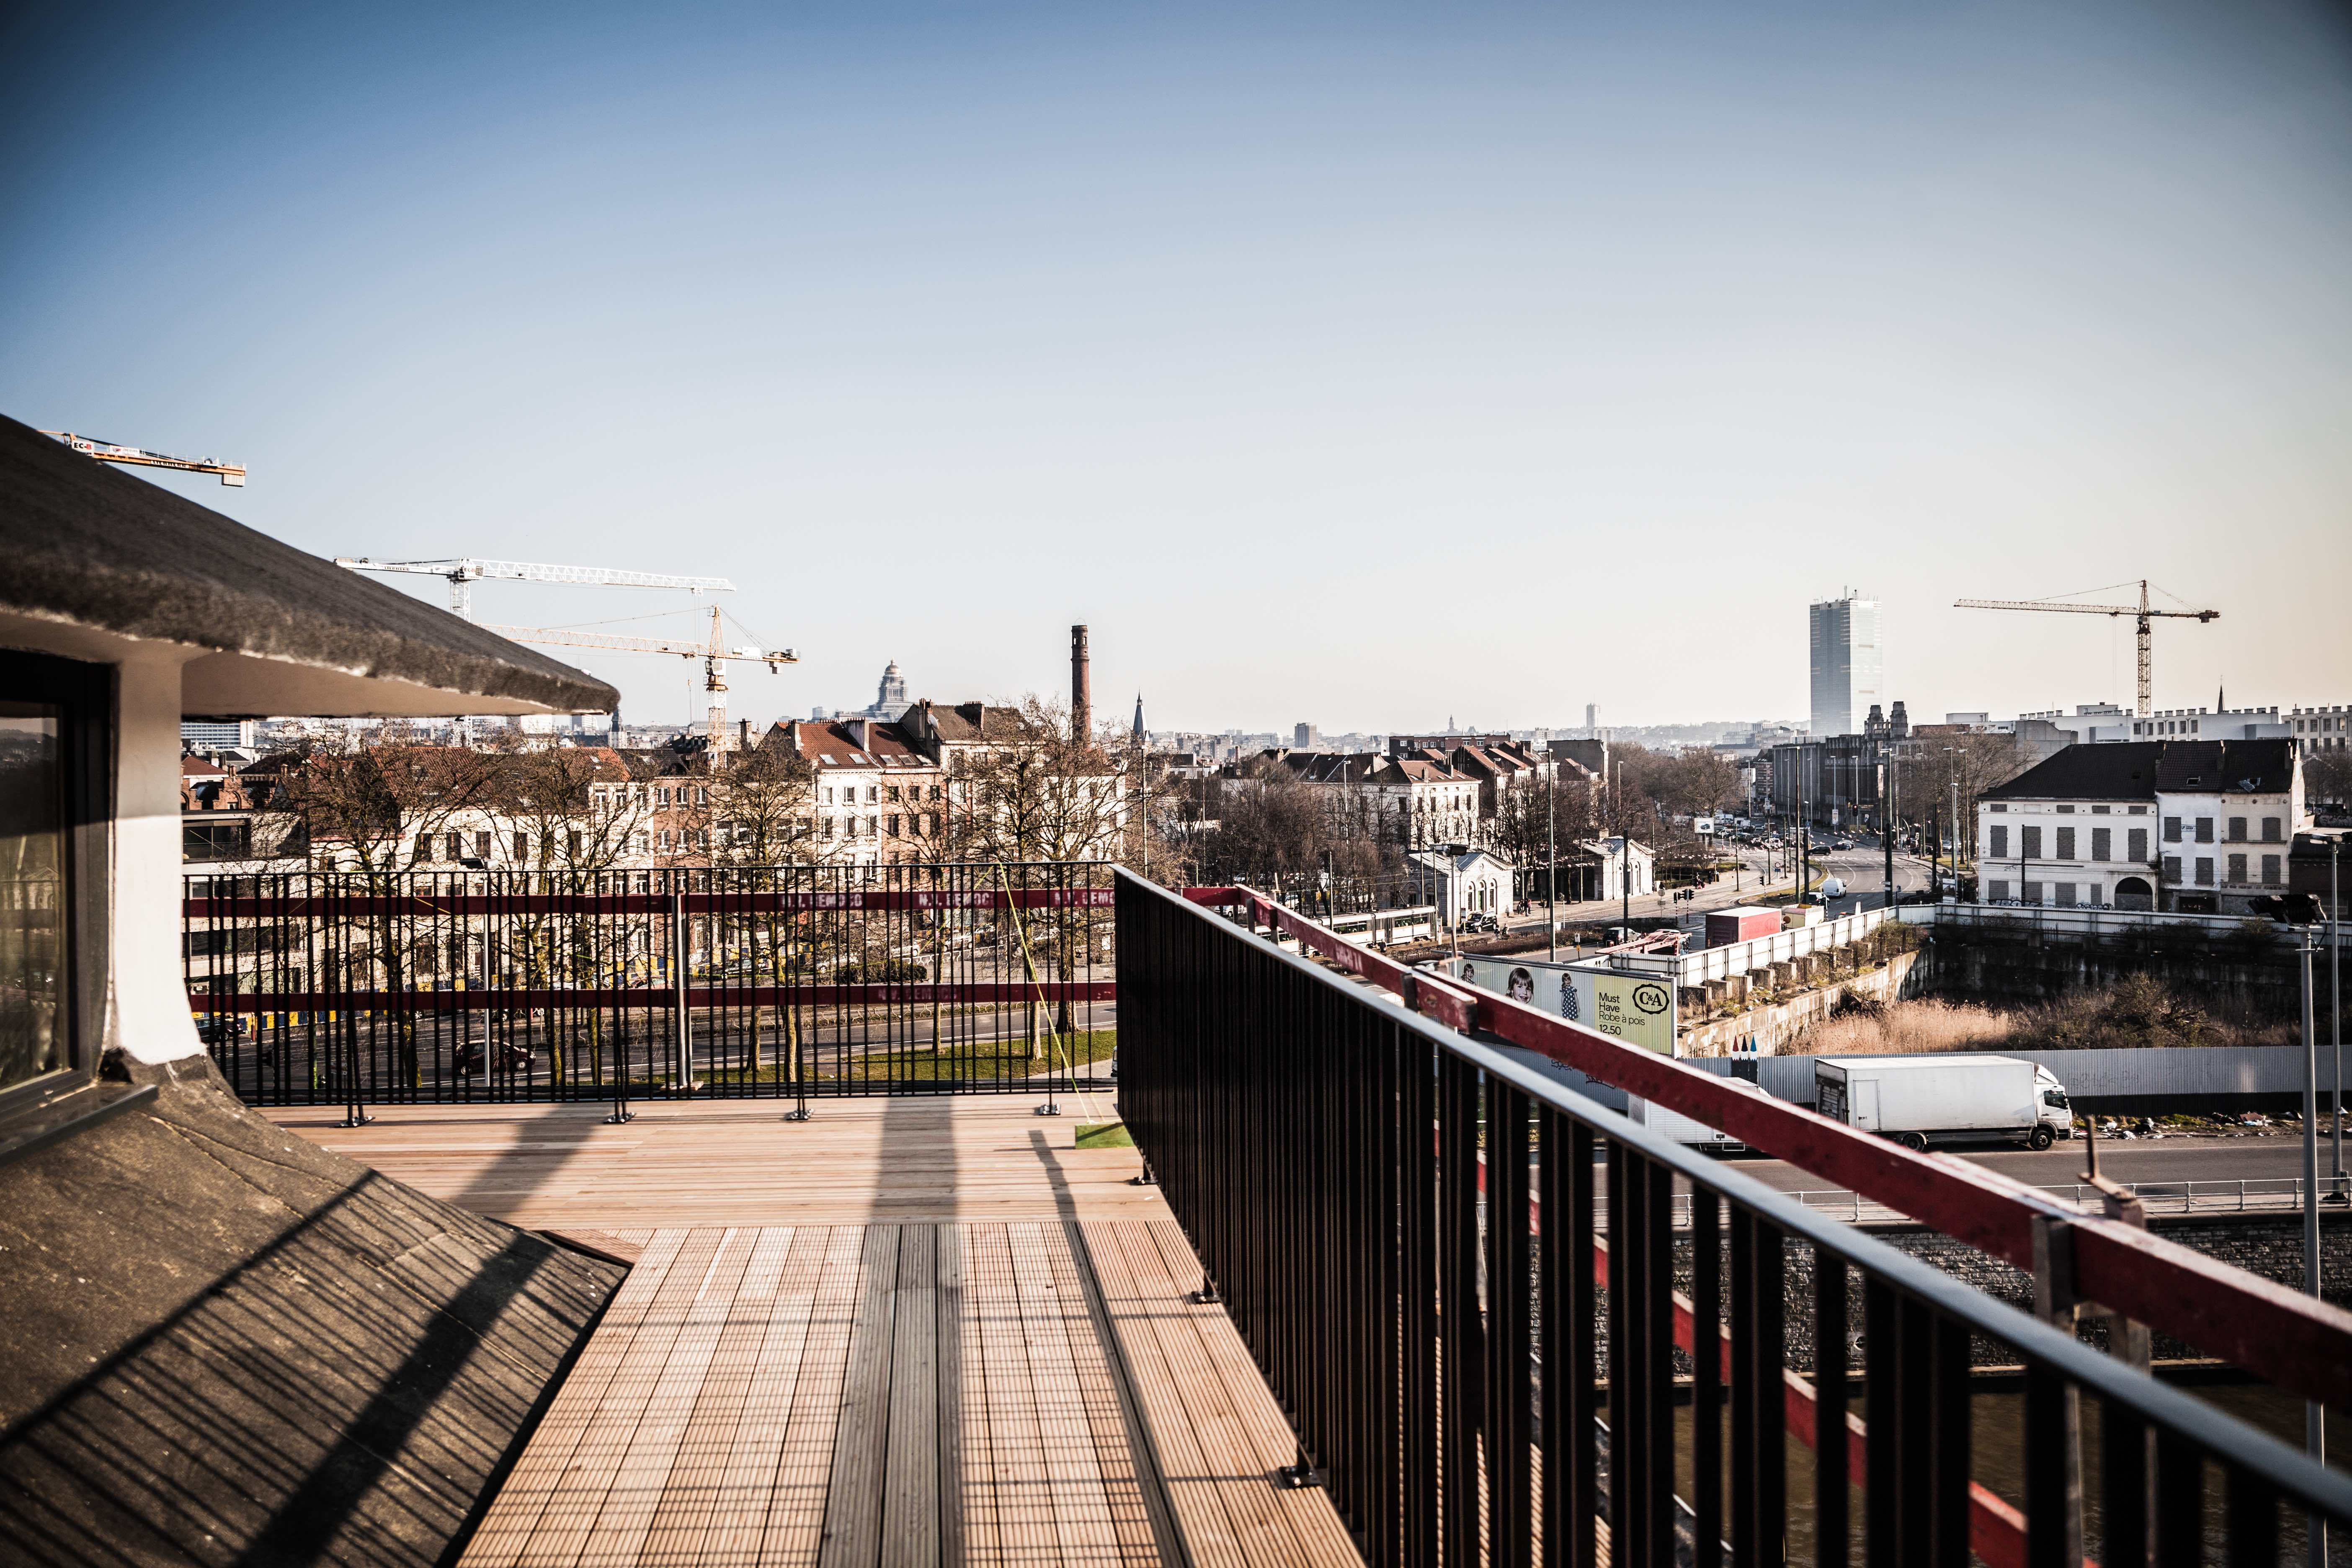 The view from atop one of the MIMA terraces | © Gautier Houba, Courtesy of the MIMA Museum